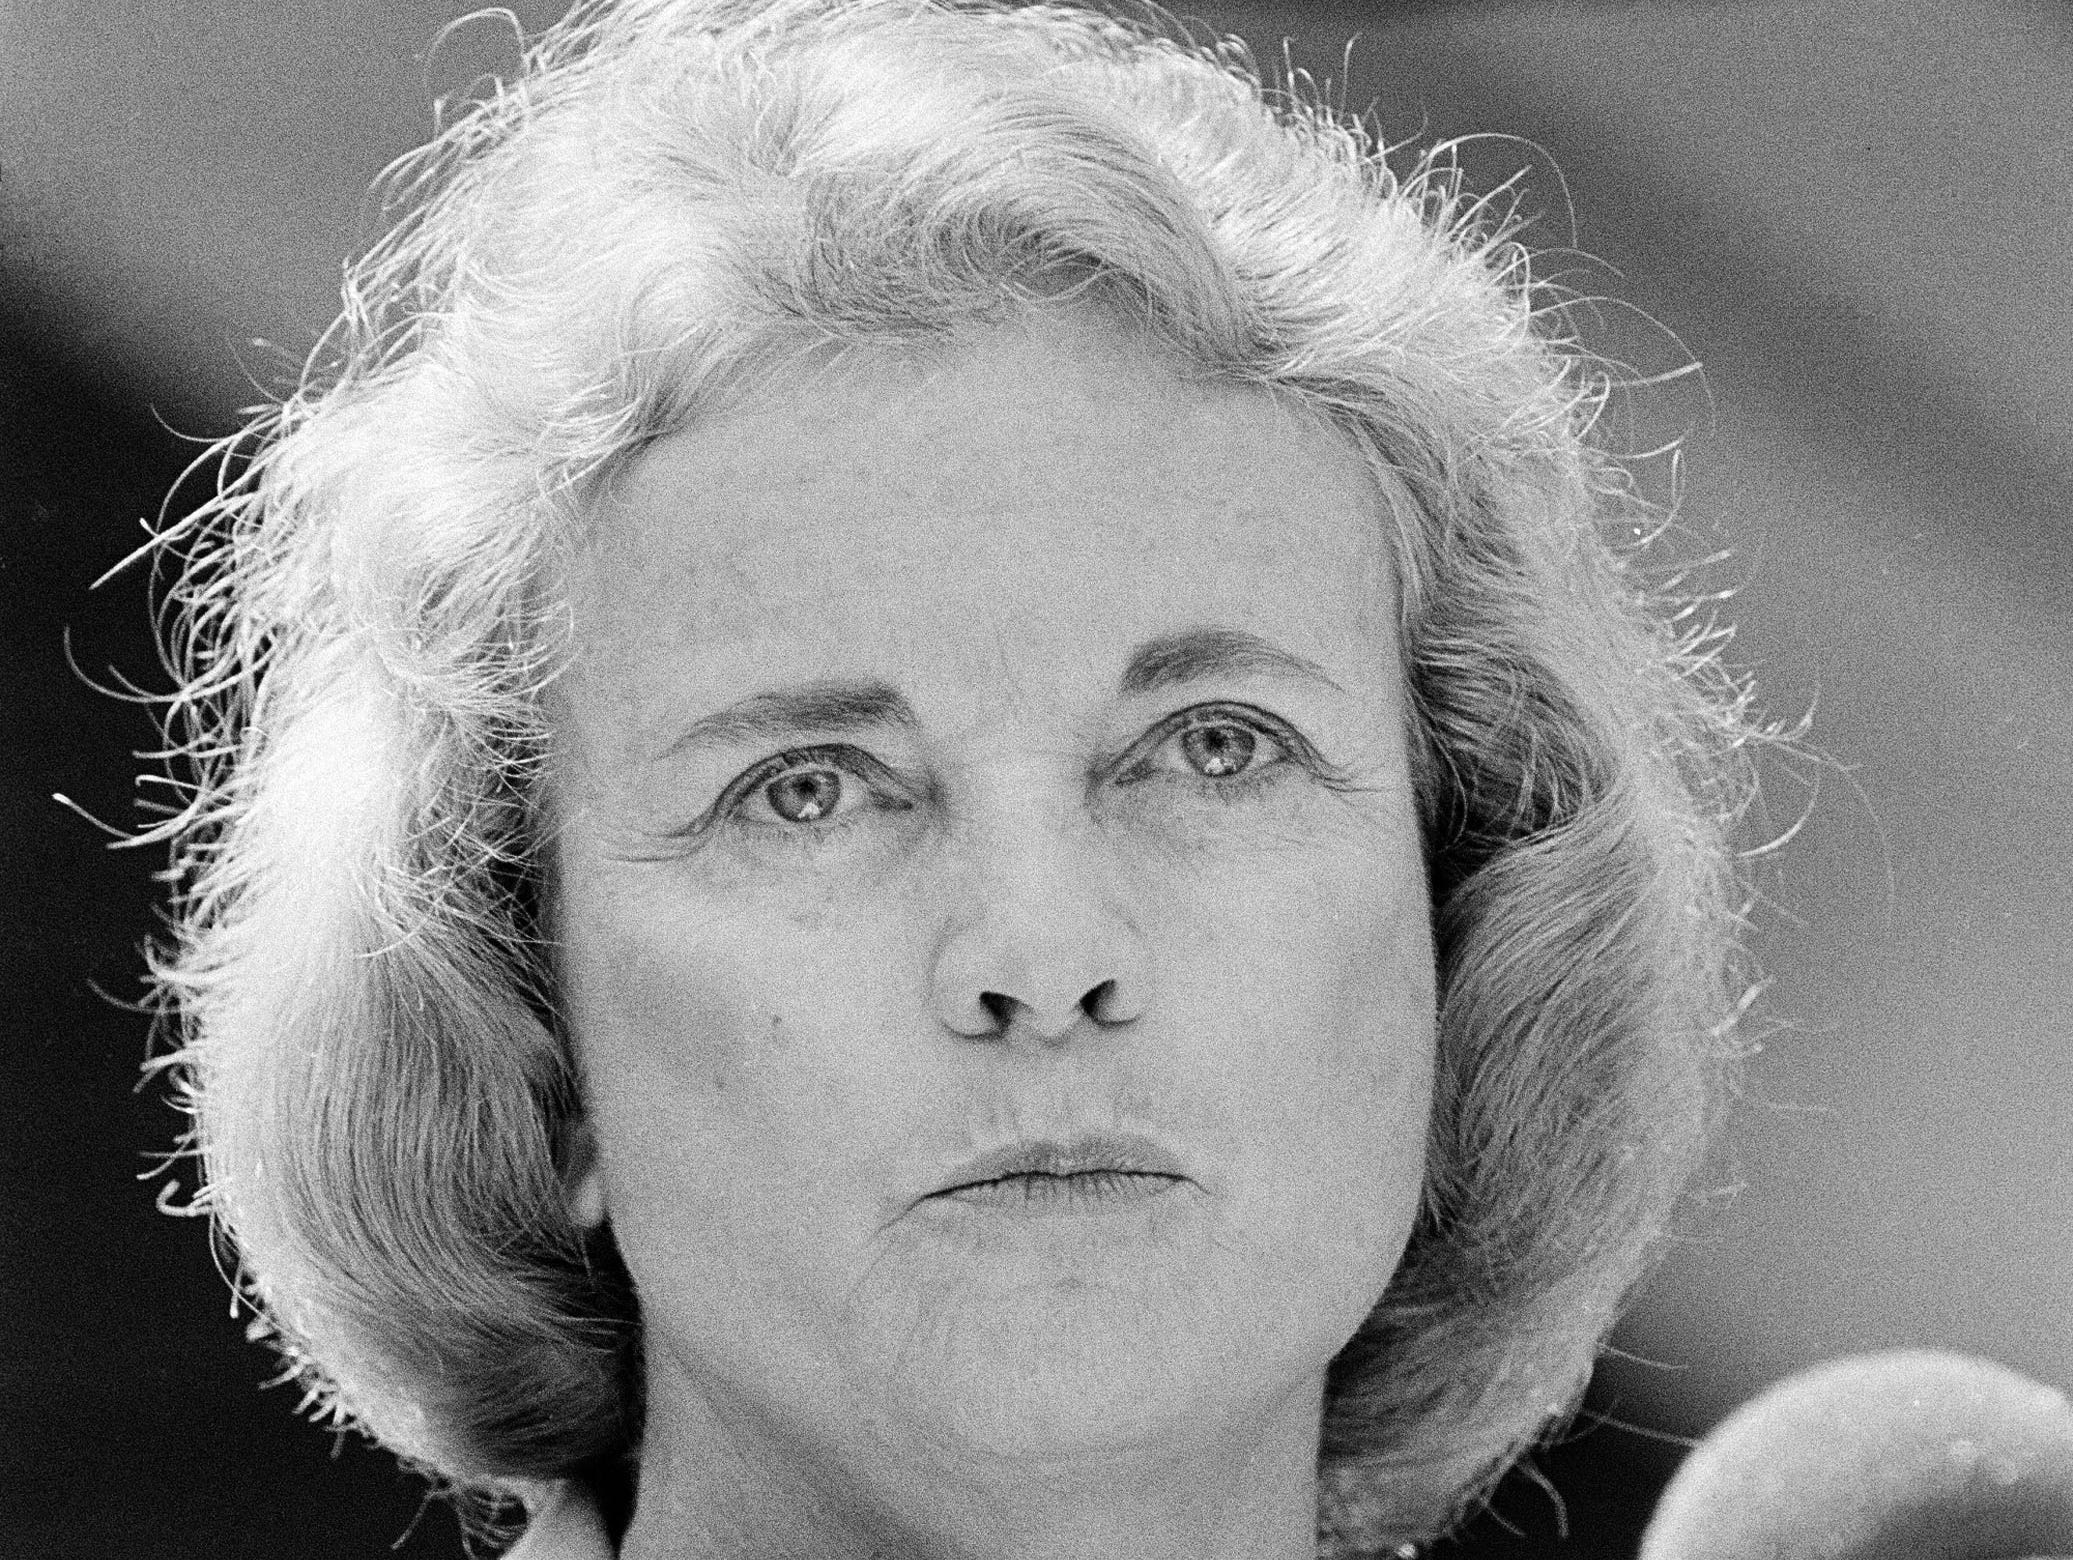 Supreme Court Justice Sandra Day O'Connor delivers the commencement address at Wheaton College, May 25, 1985.  She received an honorary degree.